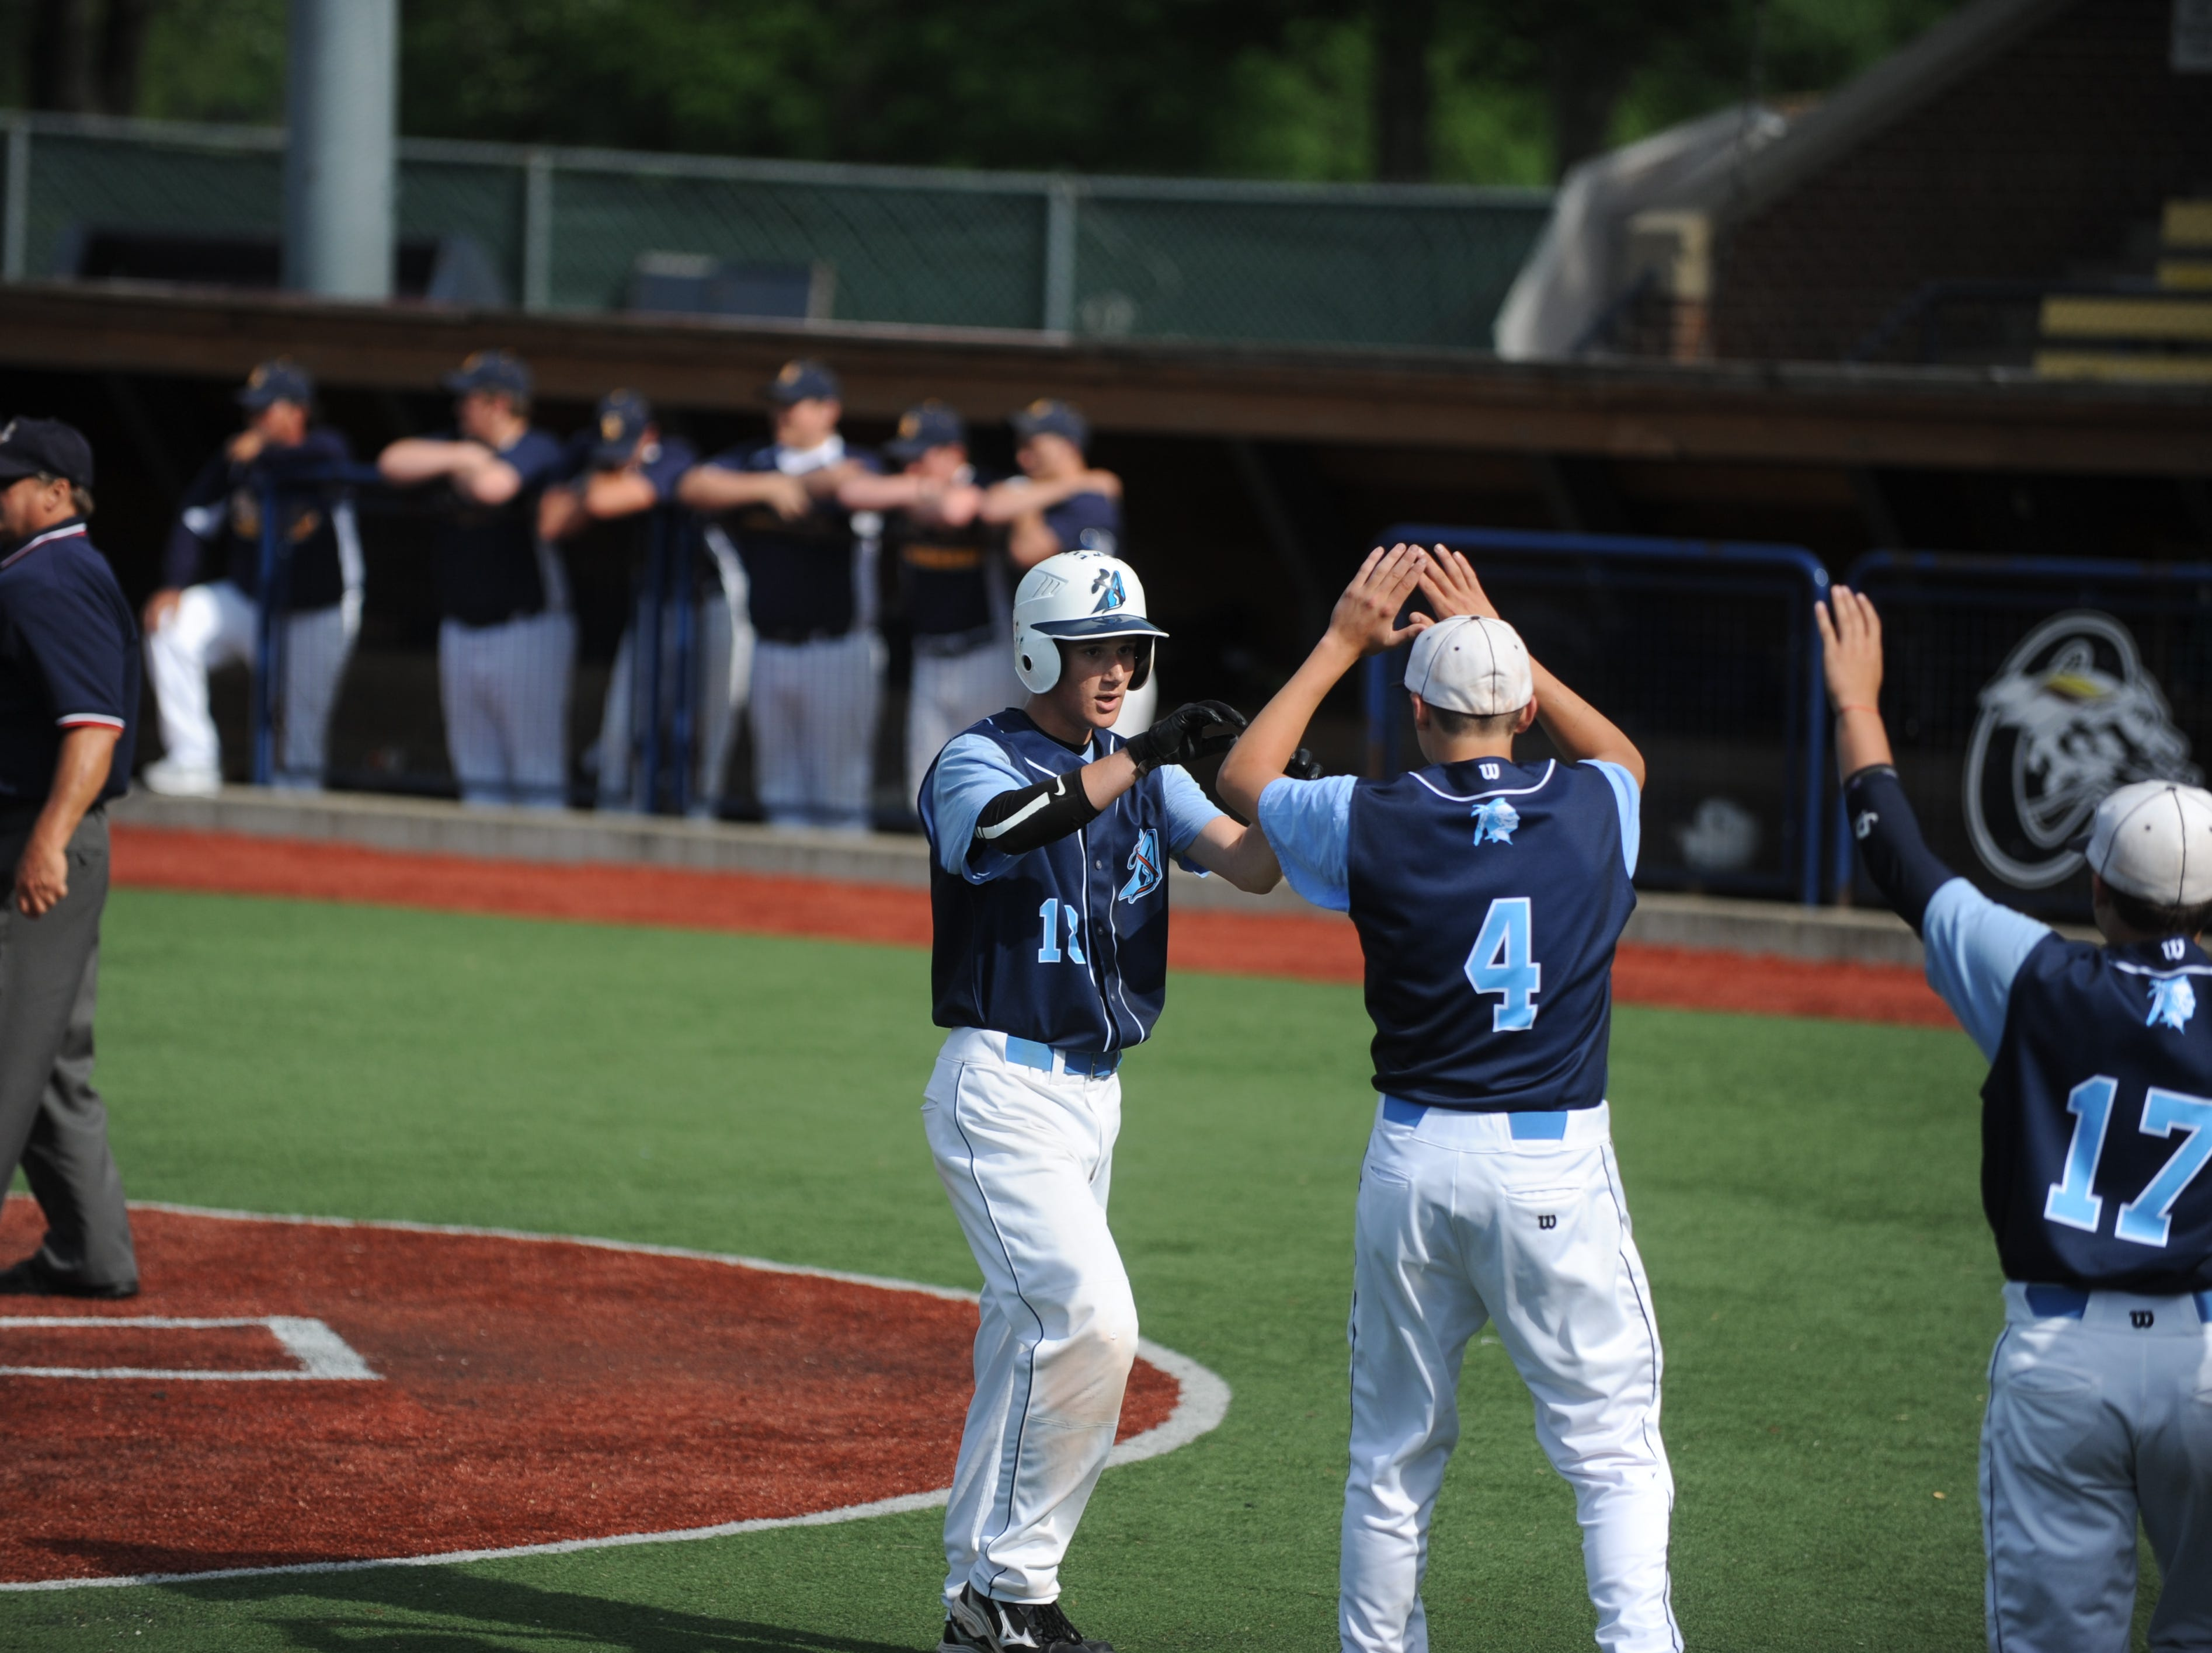 The Adena baseball team defeated South Point High School in a Division III district semifinal at V.A. Memorial stadium on Thursday, May 22, 2014. With a 7-1 win over Southpoint, the Warriors went on to participate in their third straight district final.